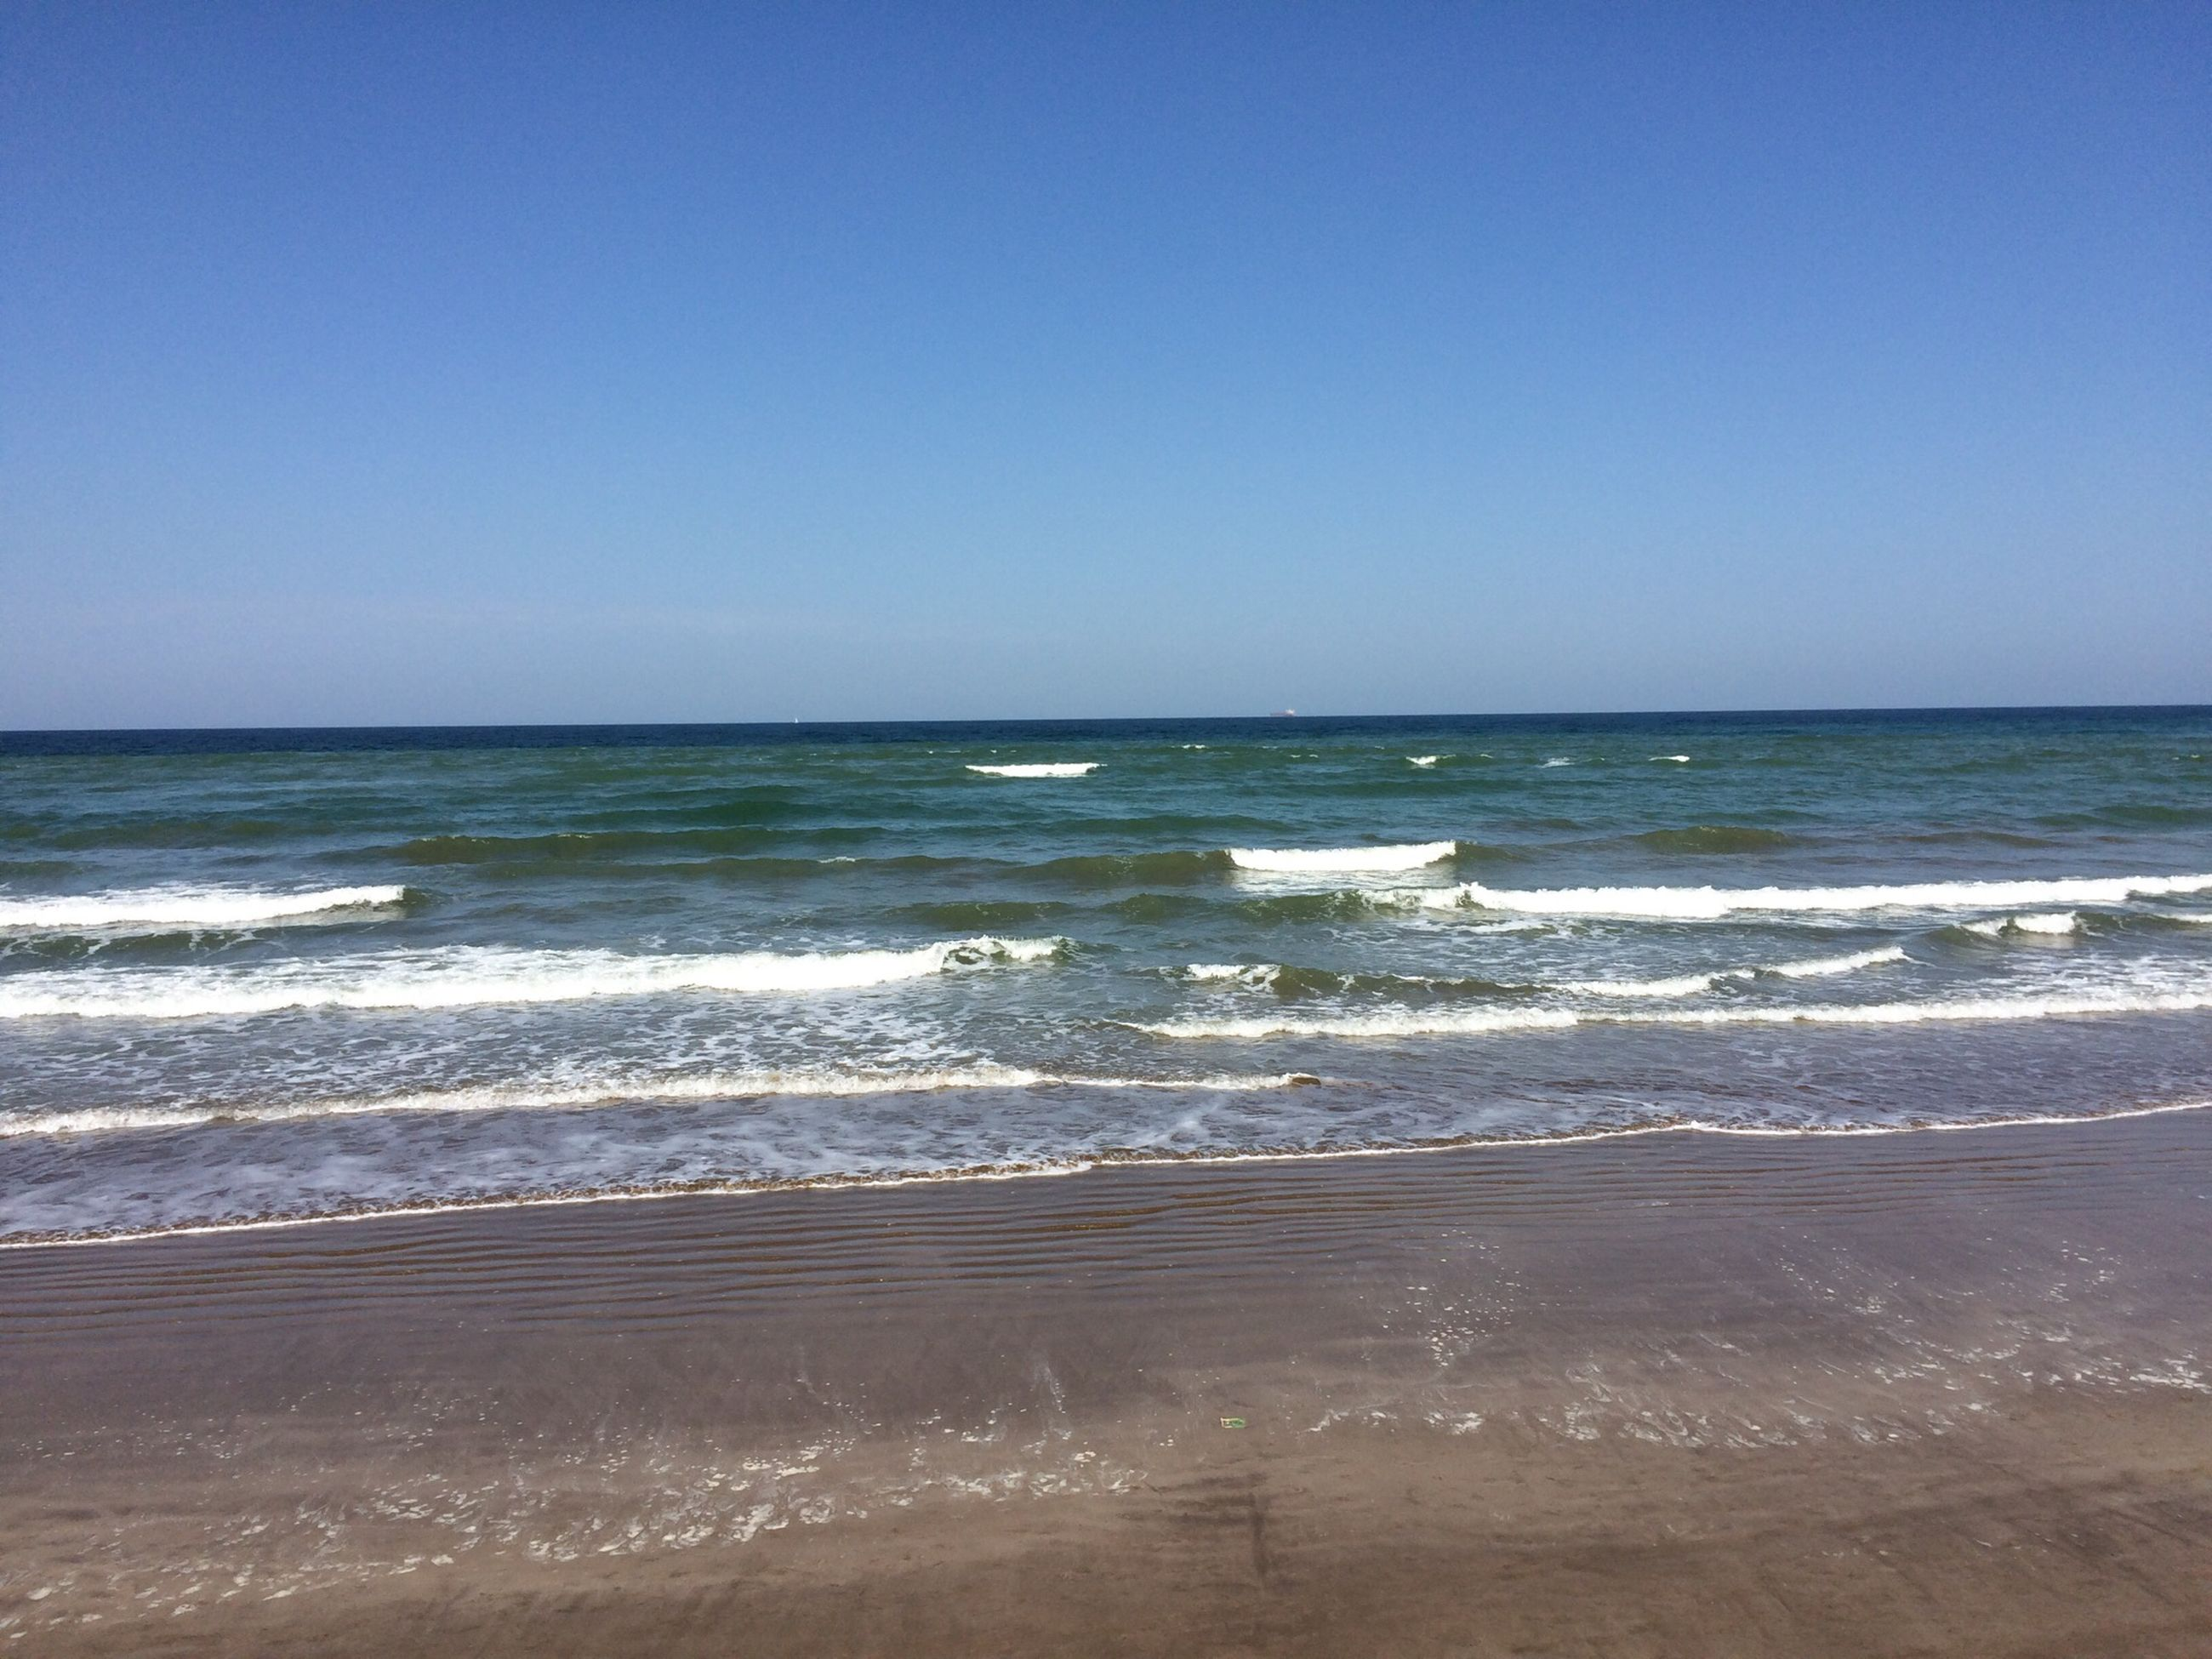 sea, horizon over water, water, clear sky, beach, copy space, shore, scenics, wave, tranquil scene, beauty in nature, blue, tranquility, sand, nature, surf, idyllic, seascape, day, outdoors